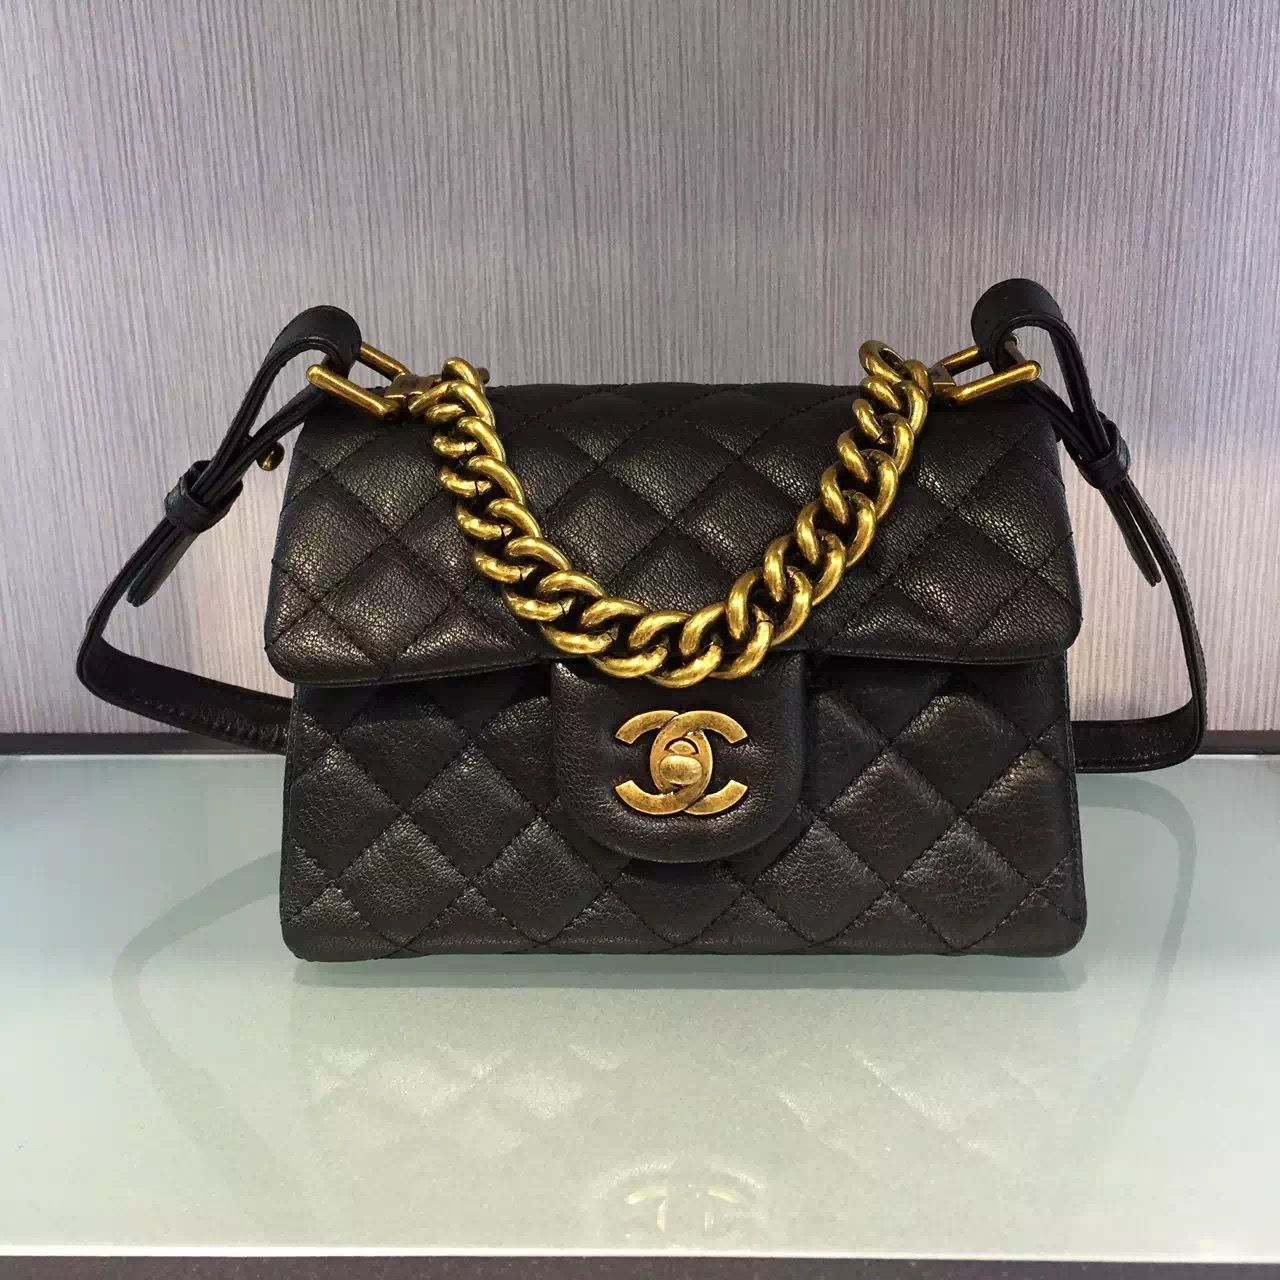 626b3fd7ec75 Should We Get This Bag? Chanel PVC Coco Splash Bags | Chanel | Chanel, Bags,  Fashion